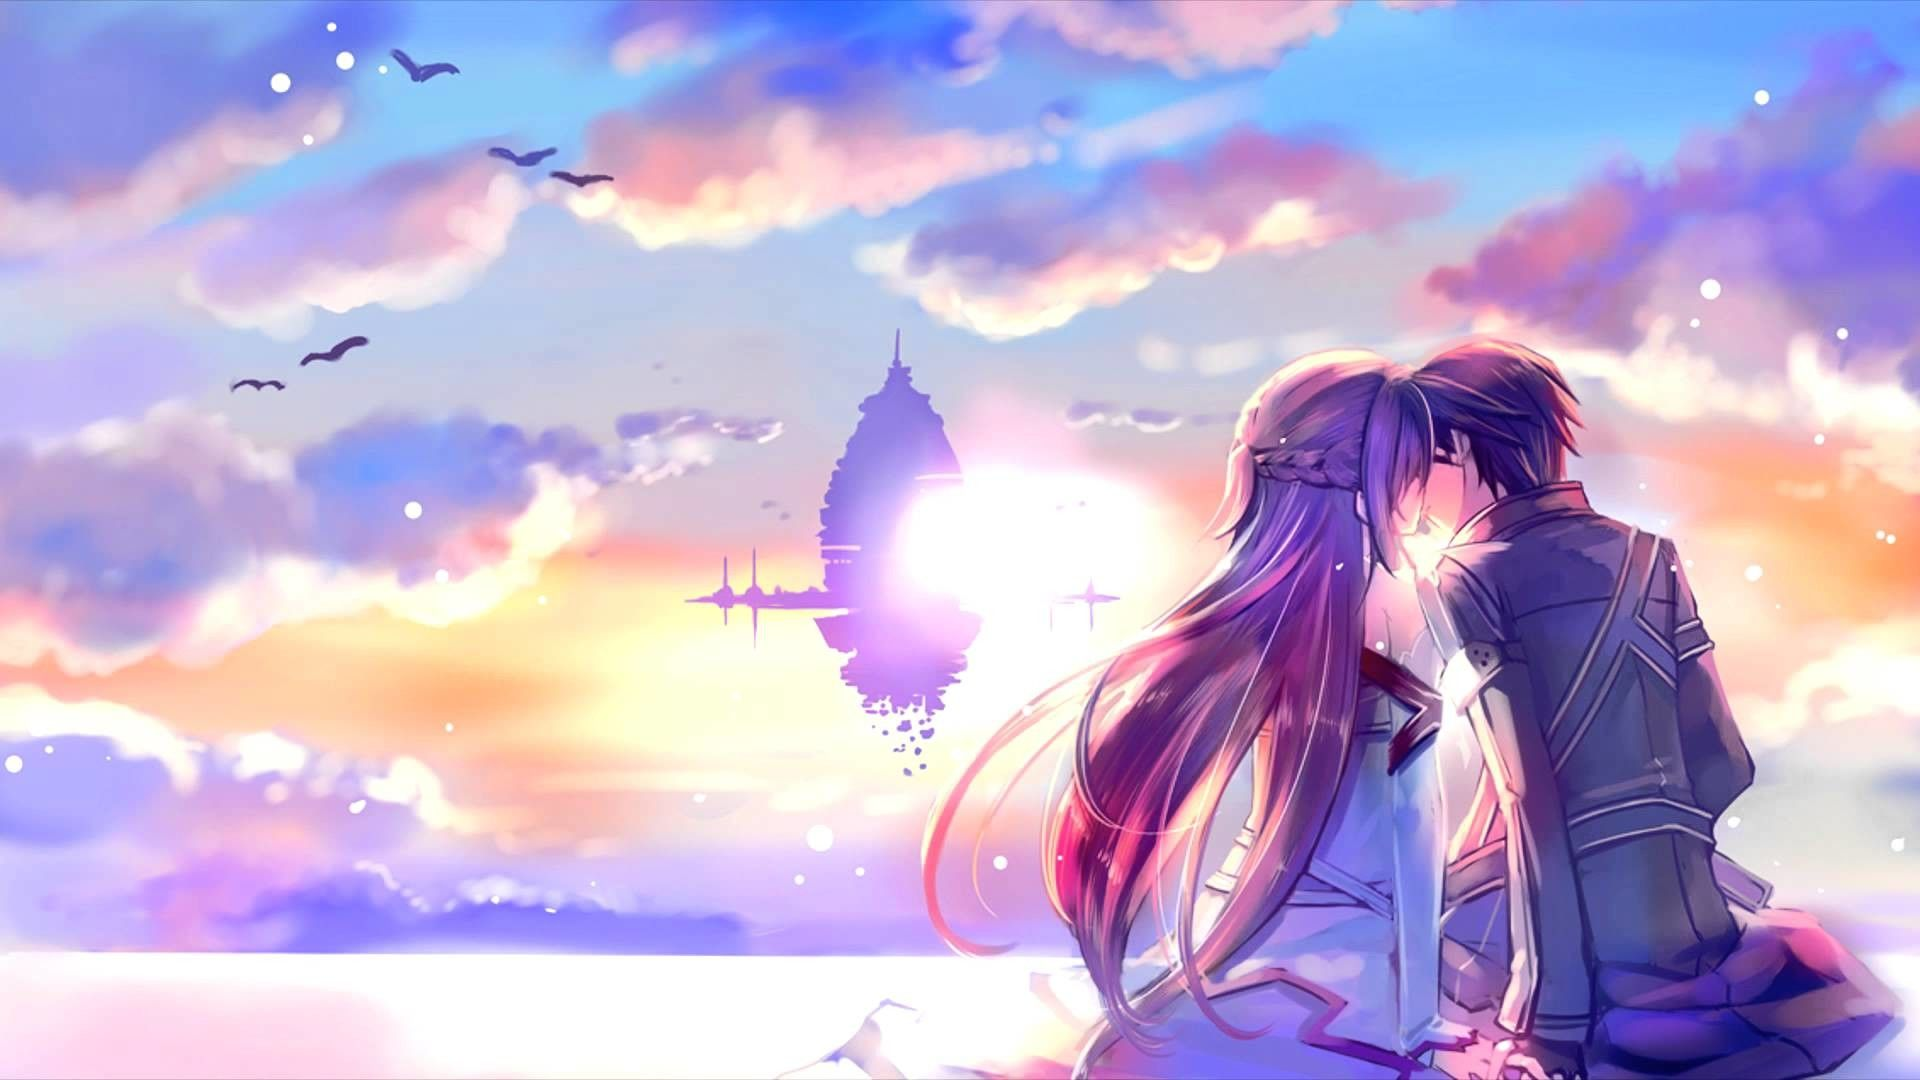 1920x1080 Romantic Anime Wallpapers 64 Images